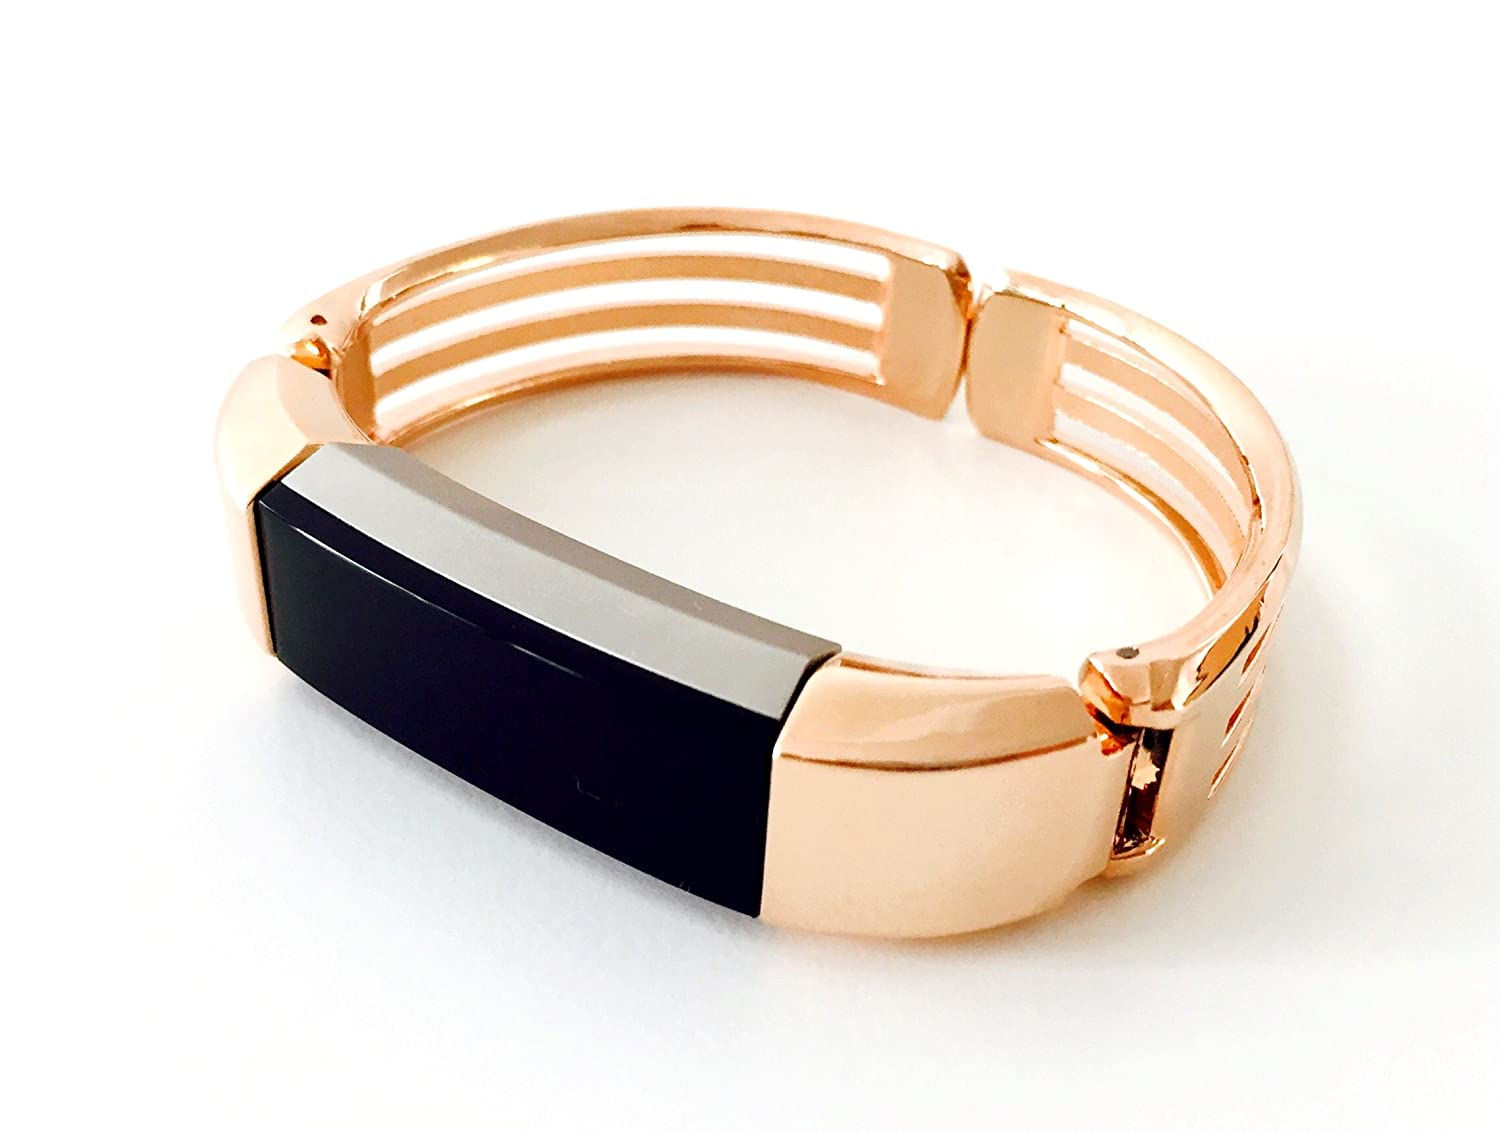 Bsi Rose Gold Metal Jewelry Bracelet Replacement Accessory Band For Fitbit Alta Fitness Activity Tracker Home Audio Theater